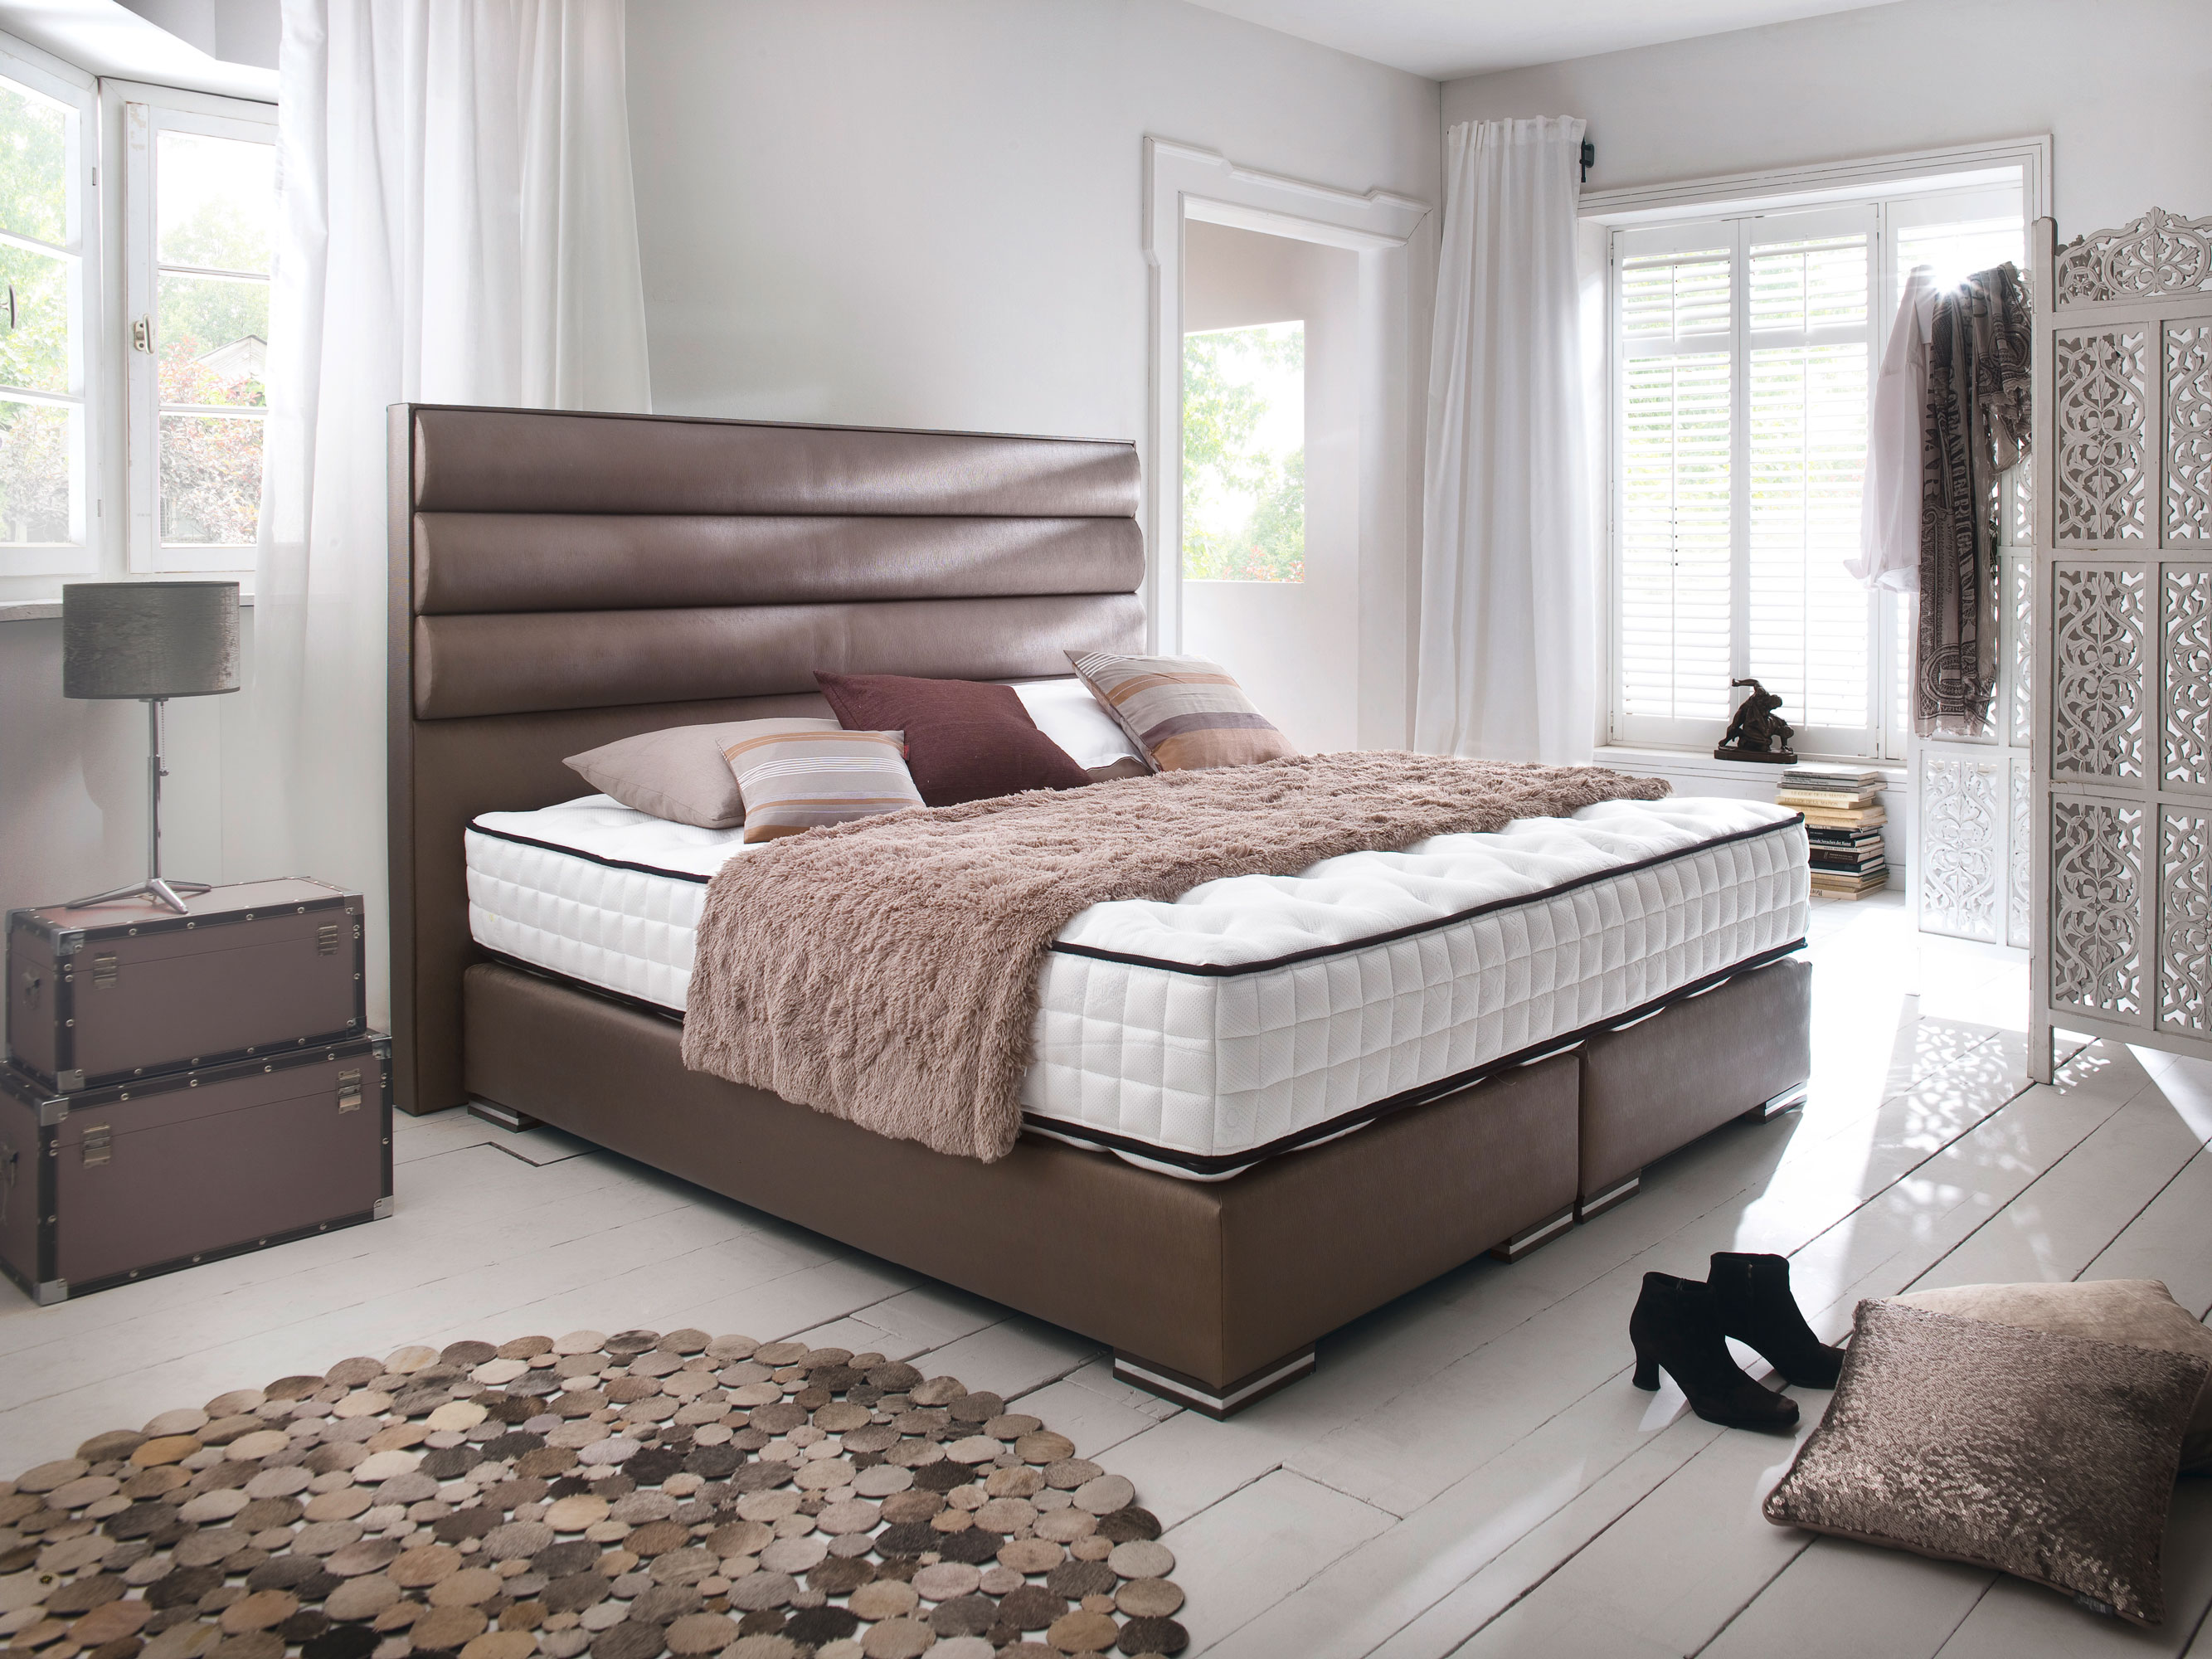 boxspringbett sheffield in vielen farben und stoffarten lieferbar. Black Bedroom Furniture Sets. Home Design Ideas